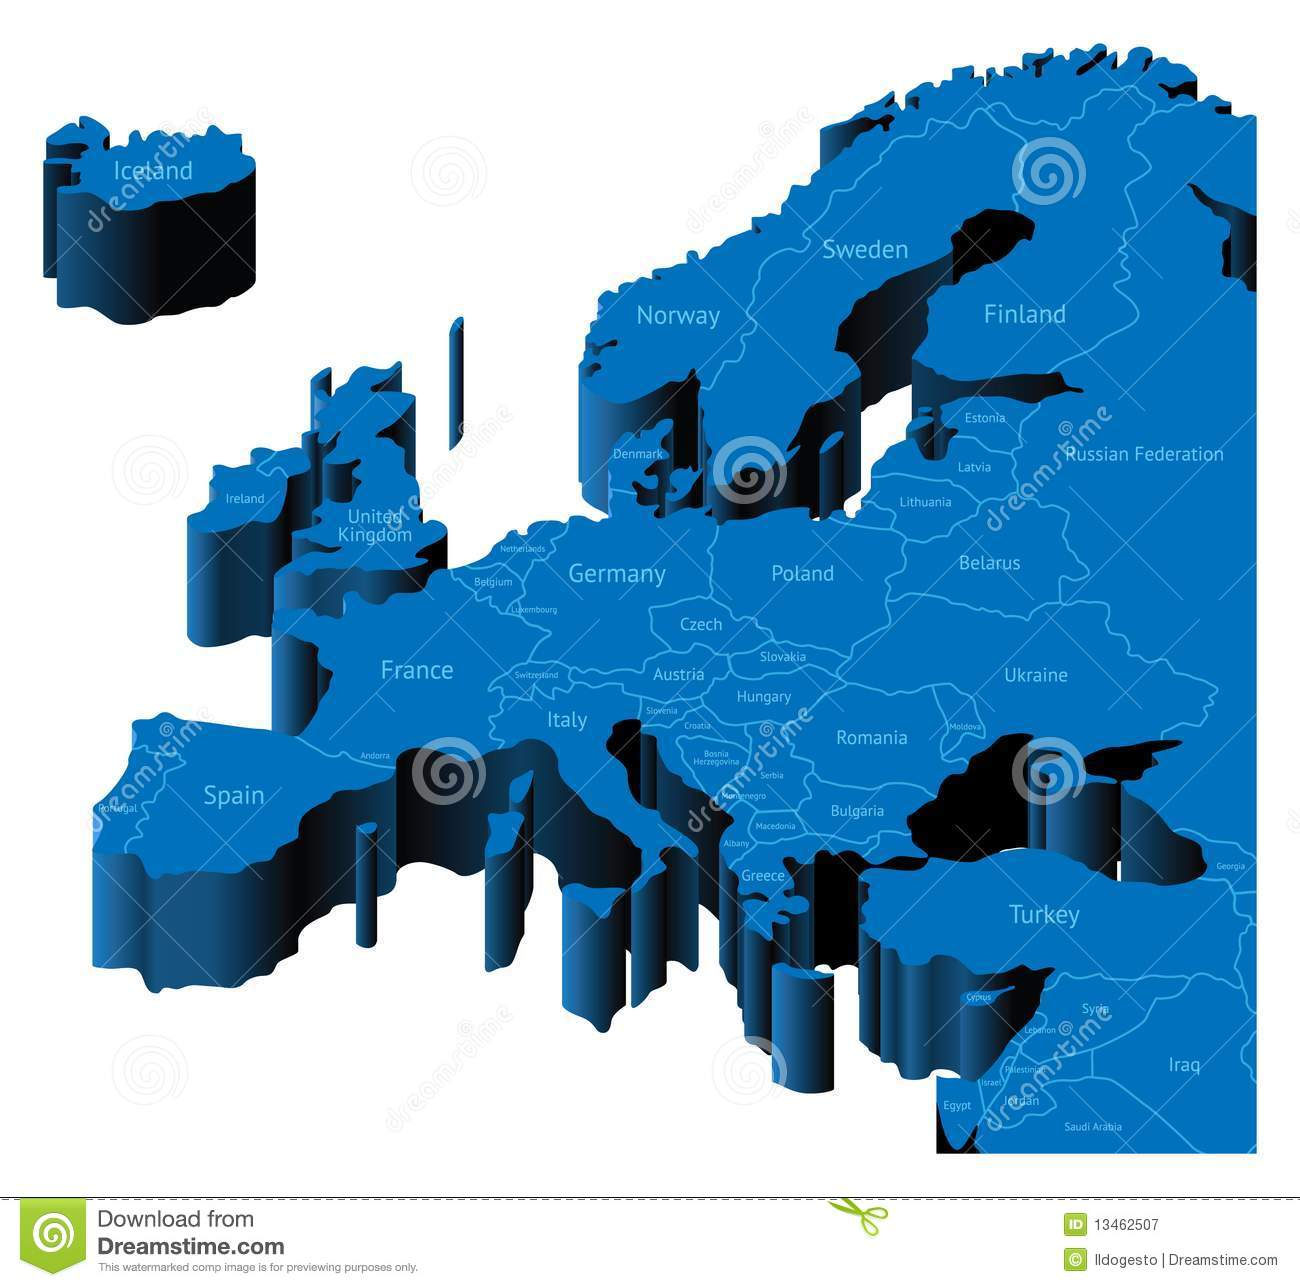 3d Map Of Europe Royalty Free Stock Photography - Image ...: https://www.dreamstime.com/royalty-free-stock-photography-3d-map-europe-image13462507